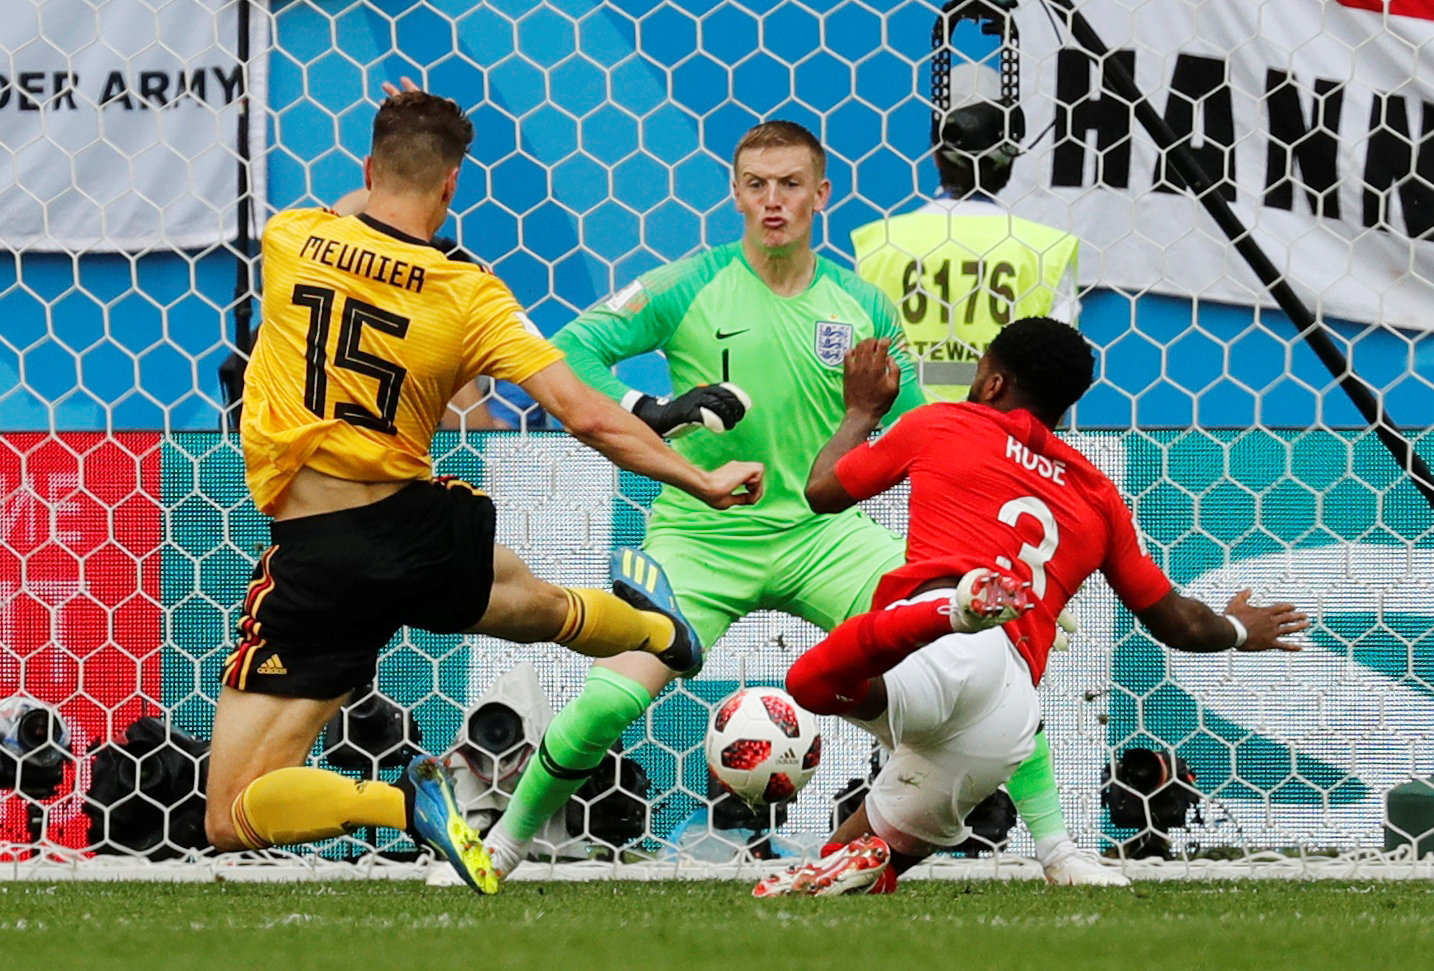 Soccer Football - World Cup - Third Place Play Off - Belgium v England - Saint Petersburg Stadium, Saint Petersburg, Russia - July 14, 2018 Belgium's Thomas Meunier scores their first goal